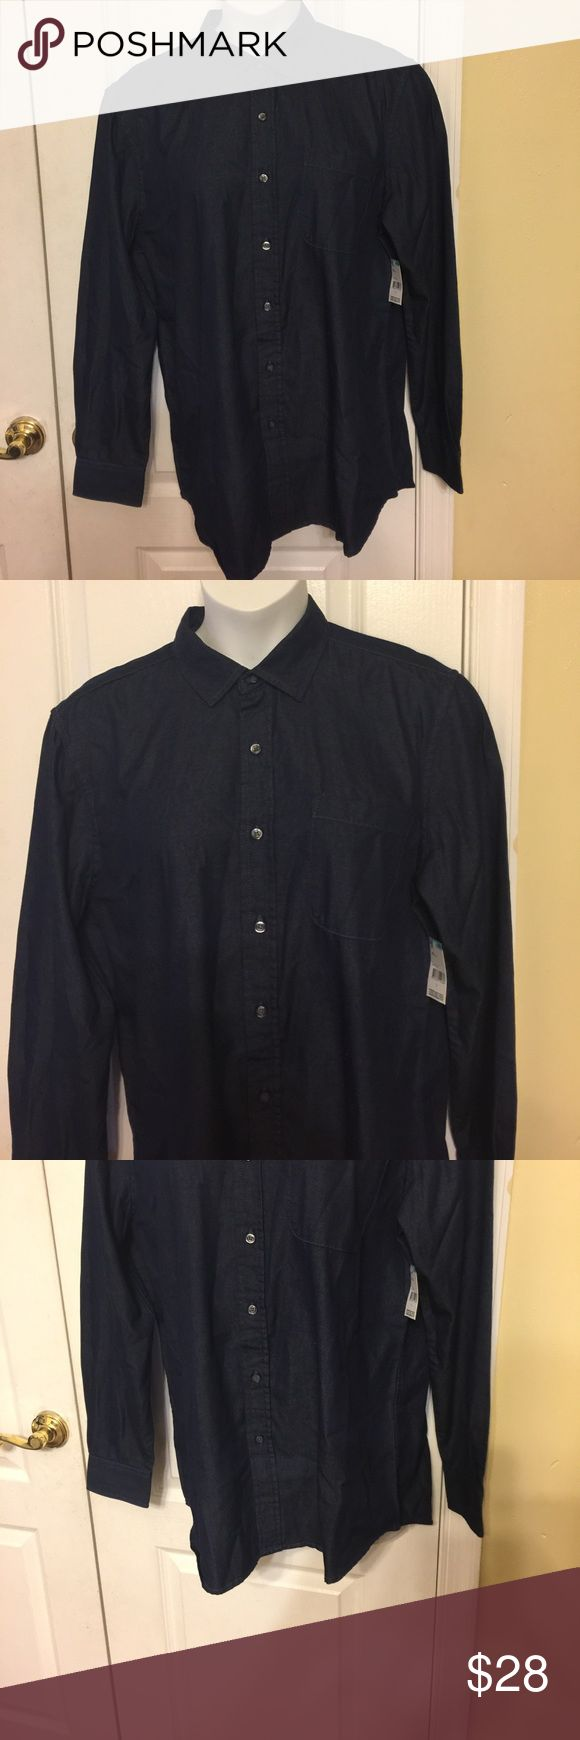 Simply Styled men's chambray shirt Large Keep your casual style on point with this chambray cotton/polyester shirt from Simply Styled. Featuring a pocket, collar, button down, long sleeves and button cuffs Simply Styled Shirts Casual Button Down Shirts